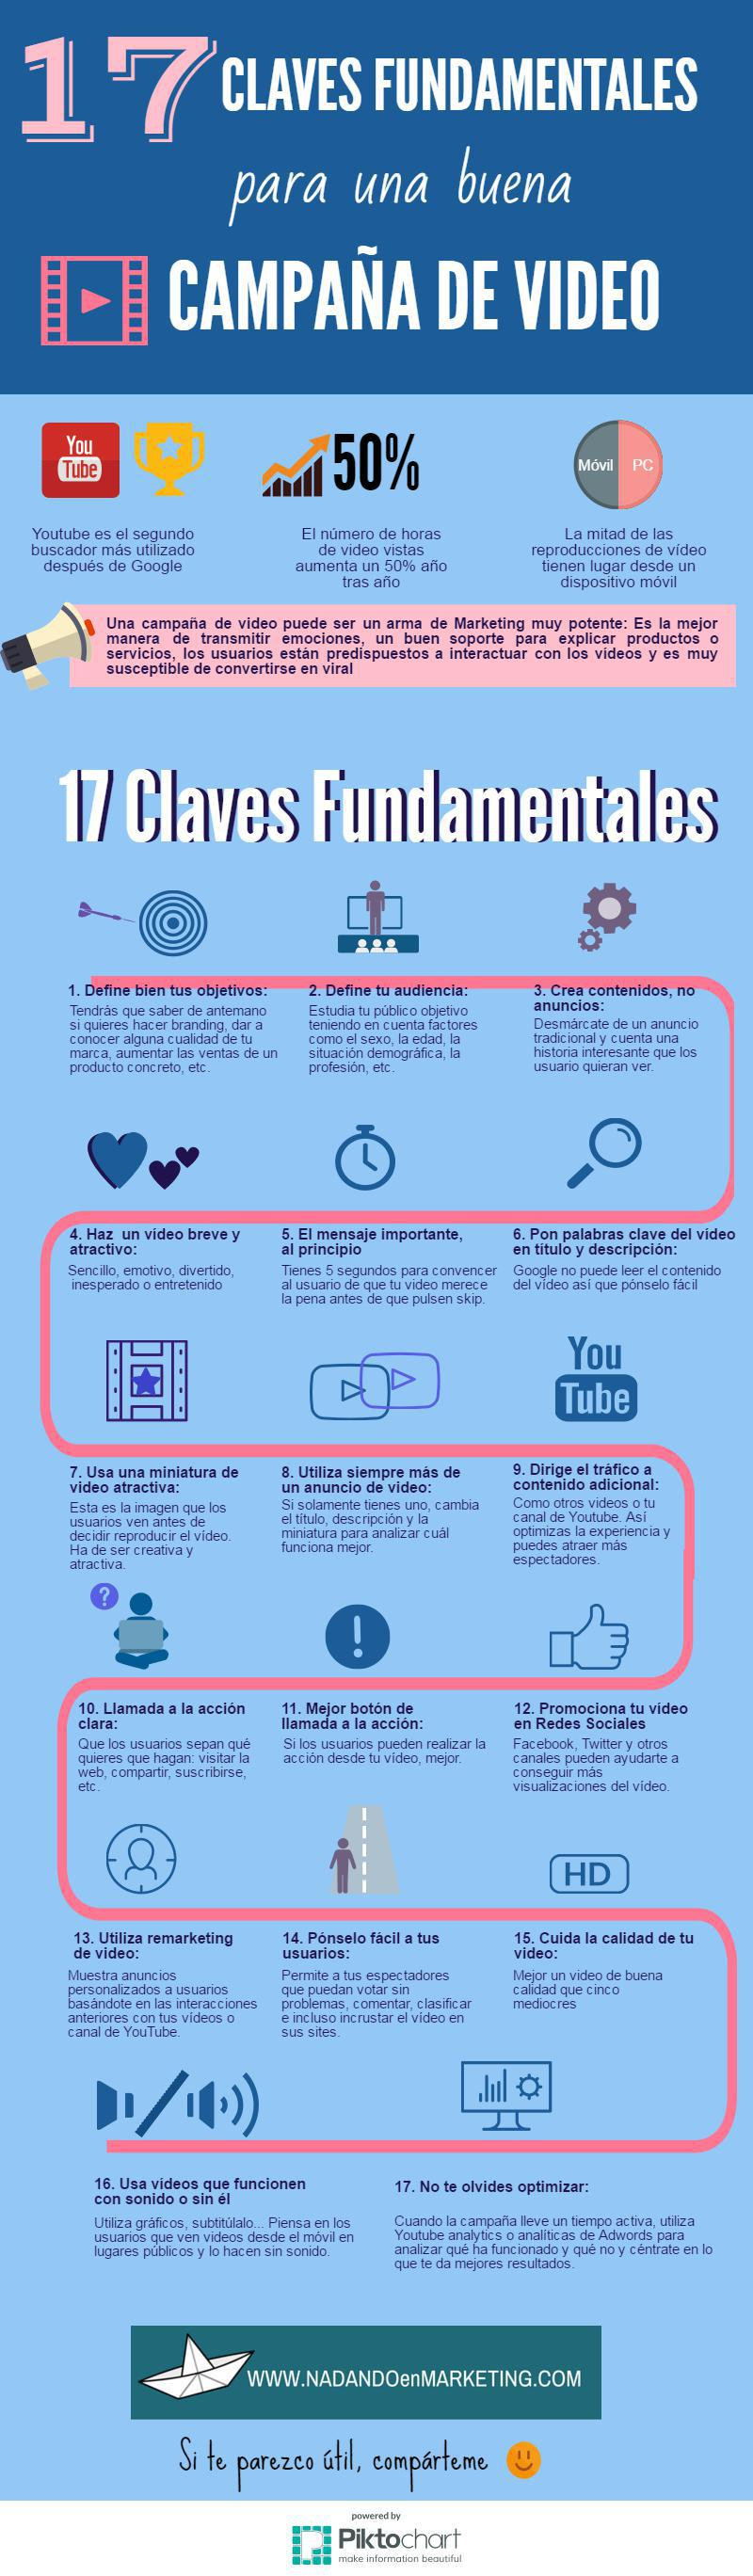 17 Claves fundamentales para una buena campaña de video #infografia #infographic #marketing